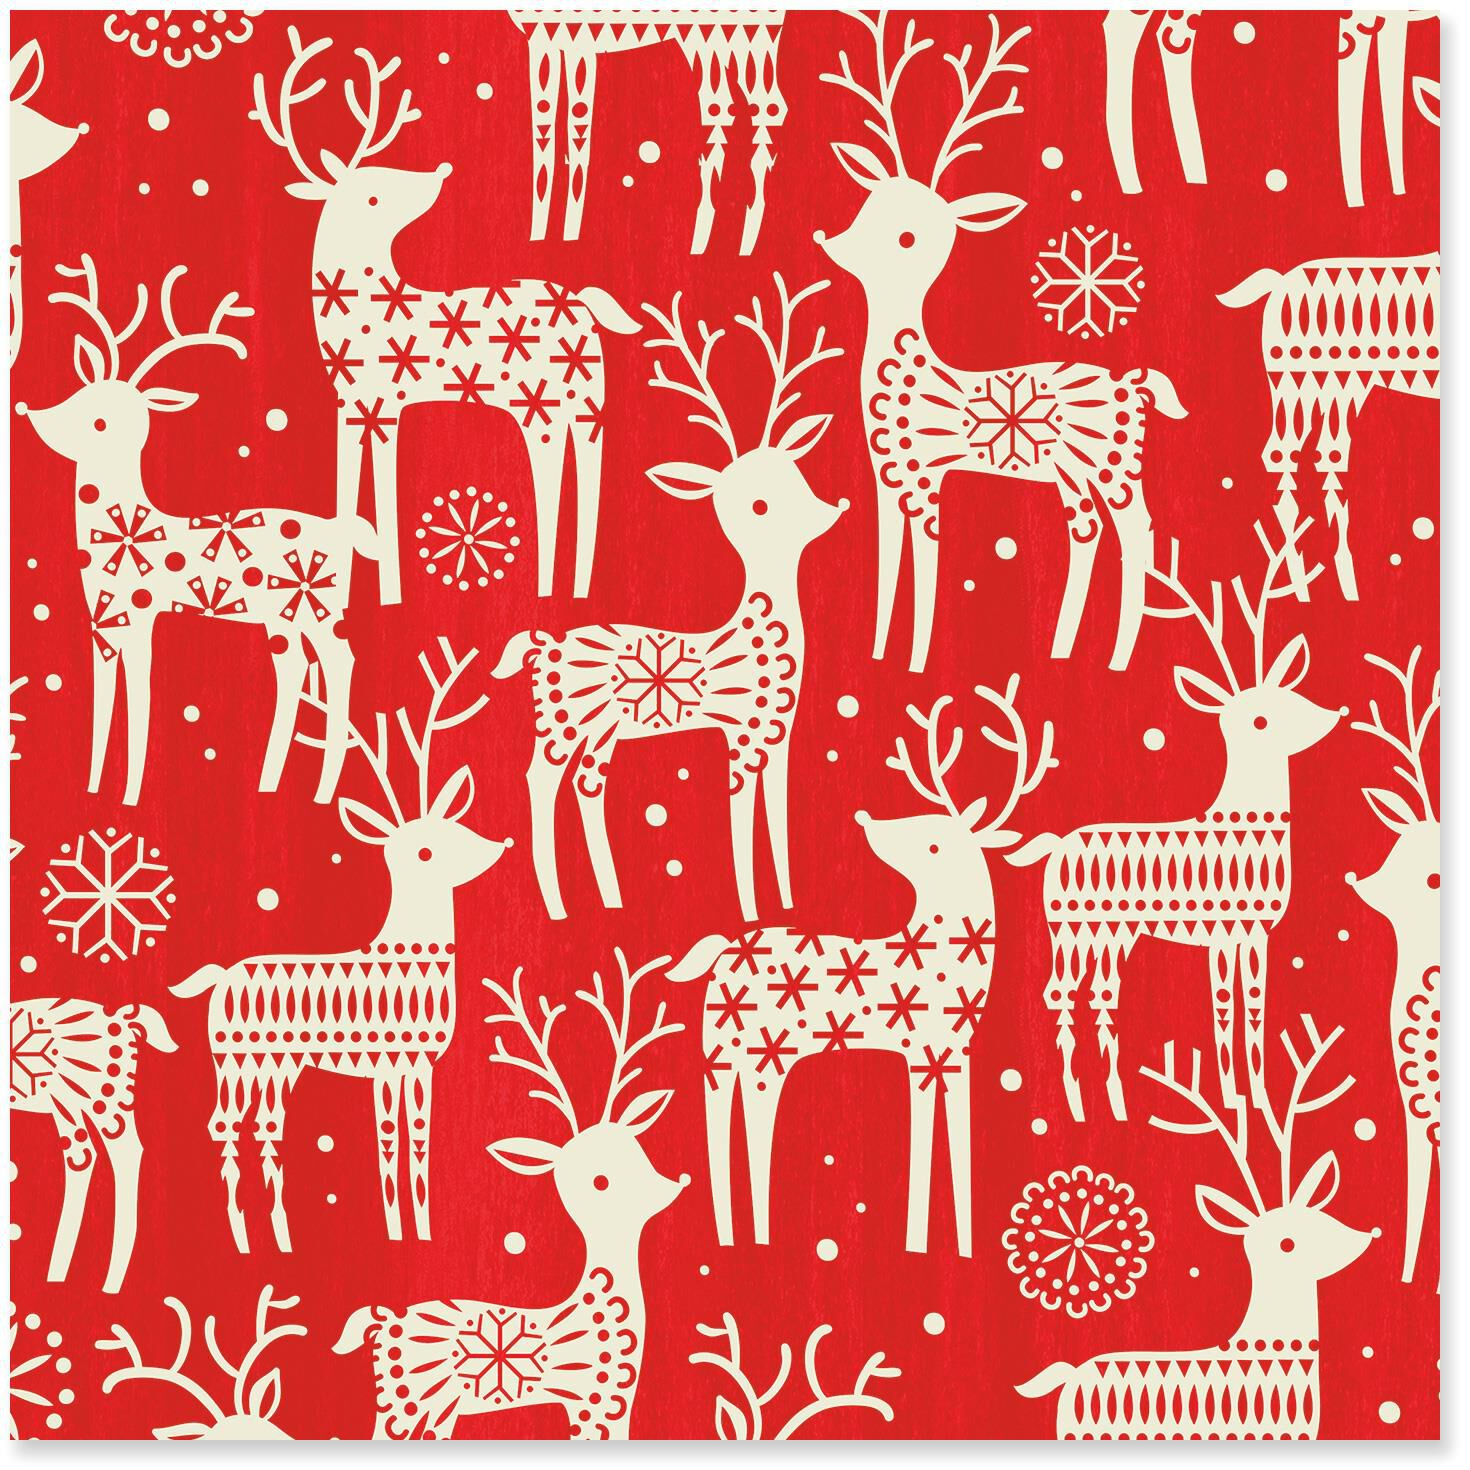 Reindeer Jumbo Christmas Wrapping Paper Roll 100 Sq Ft